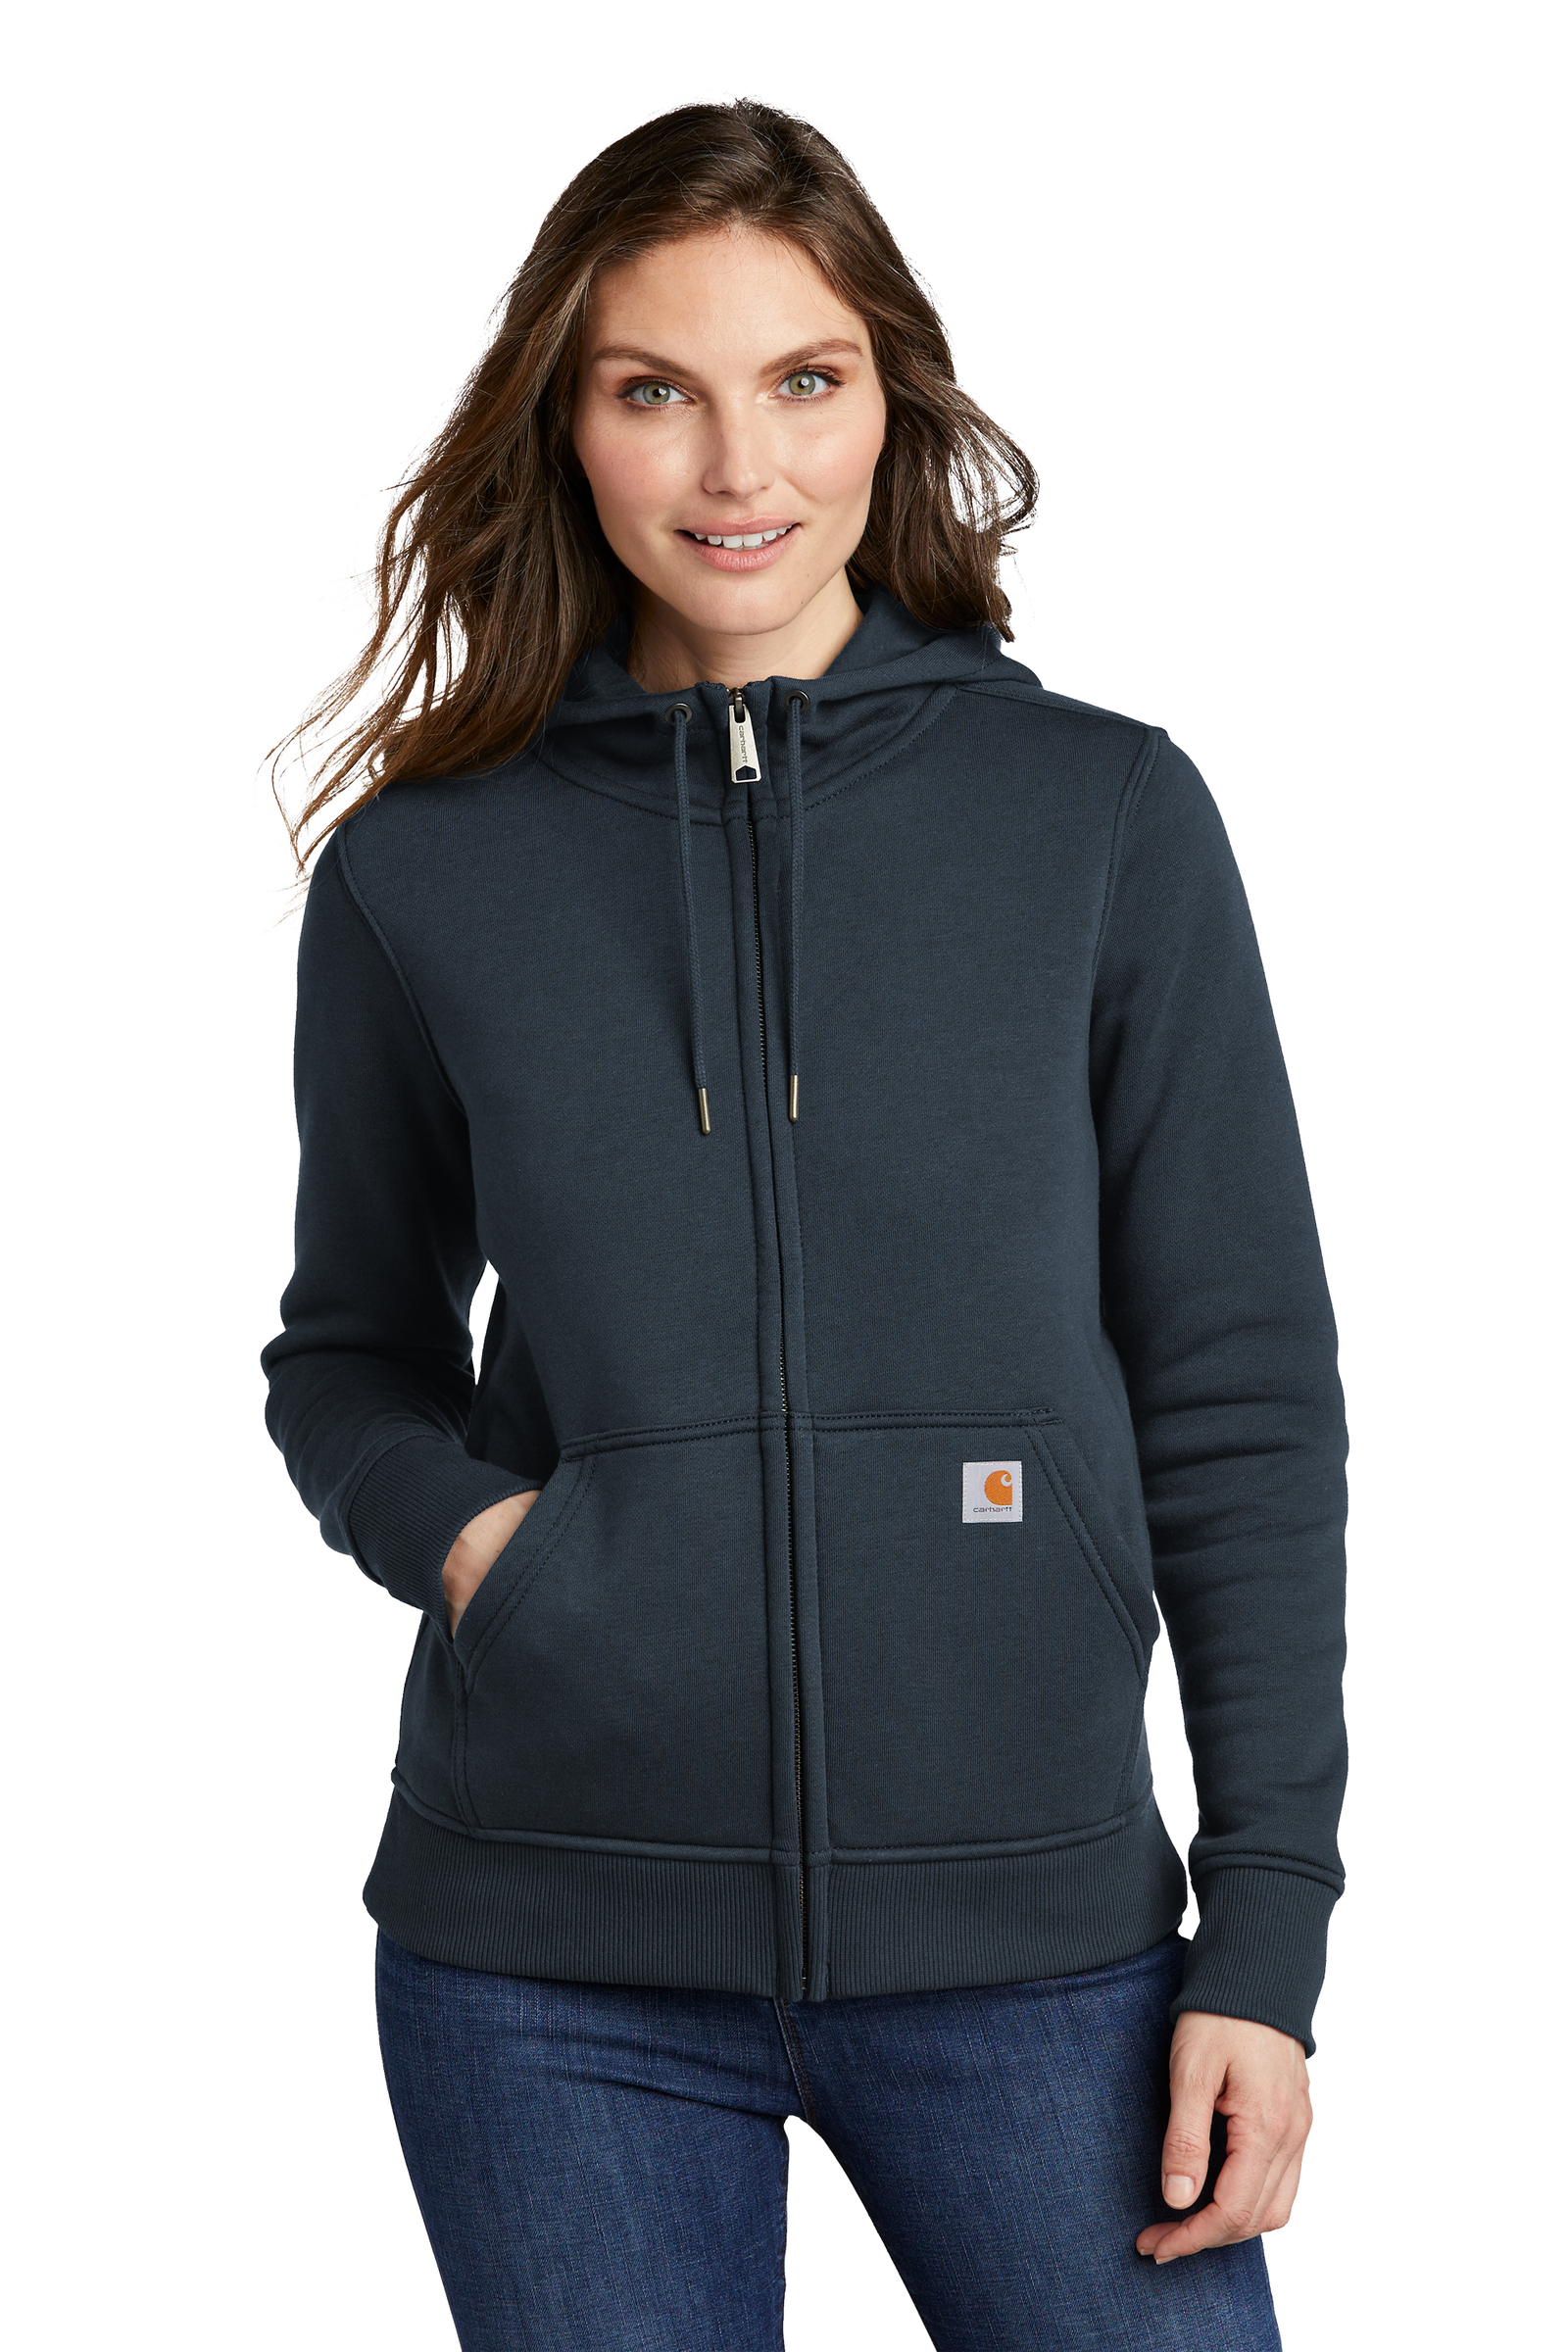 Carhartt Embroidered Women's Clarksburg Full-Zip Hoodie